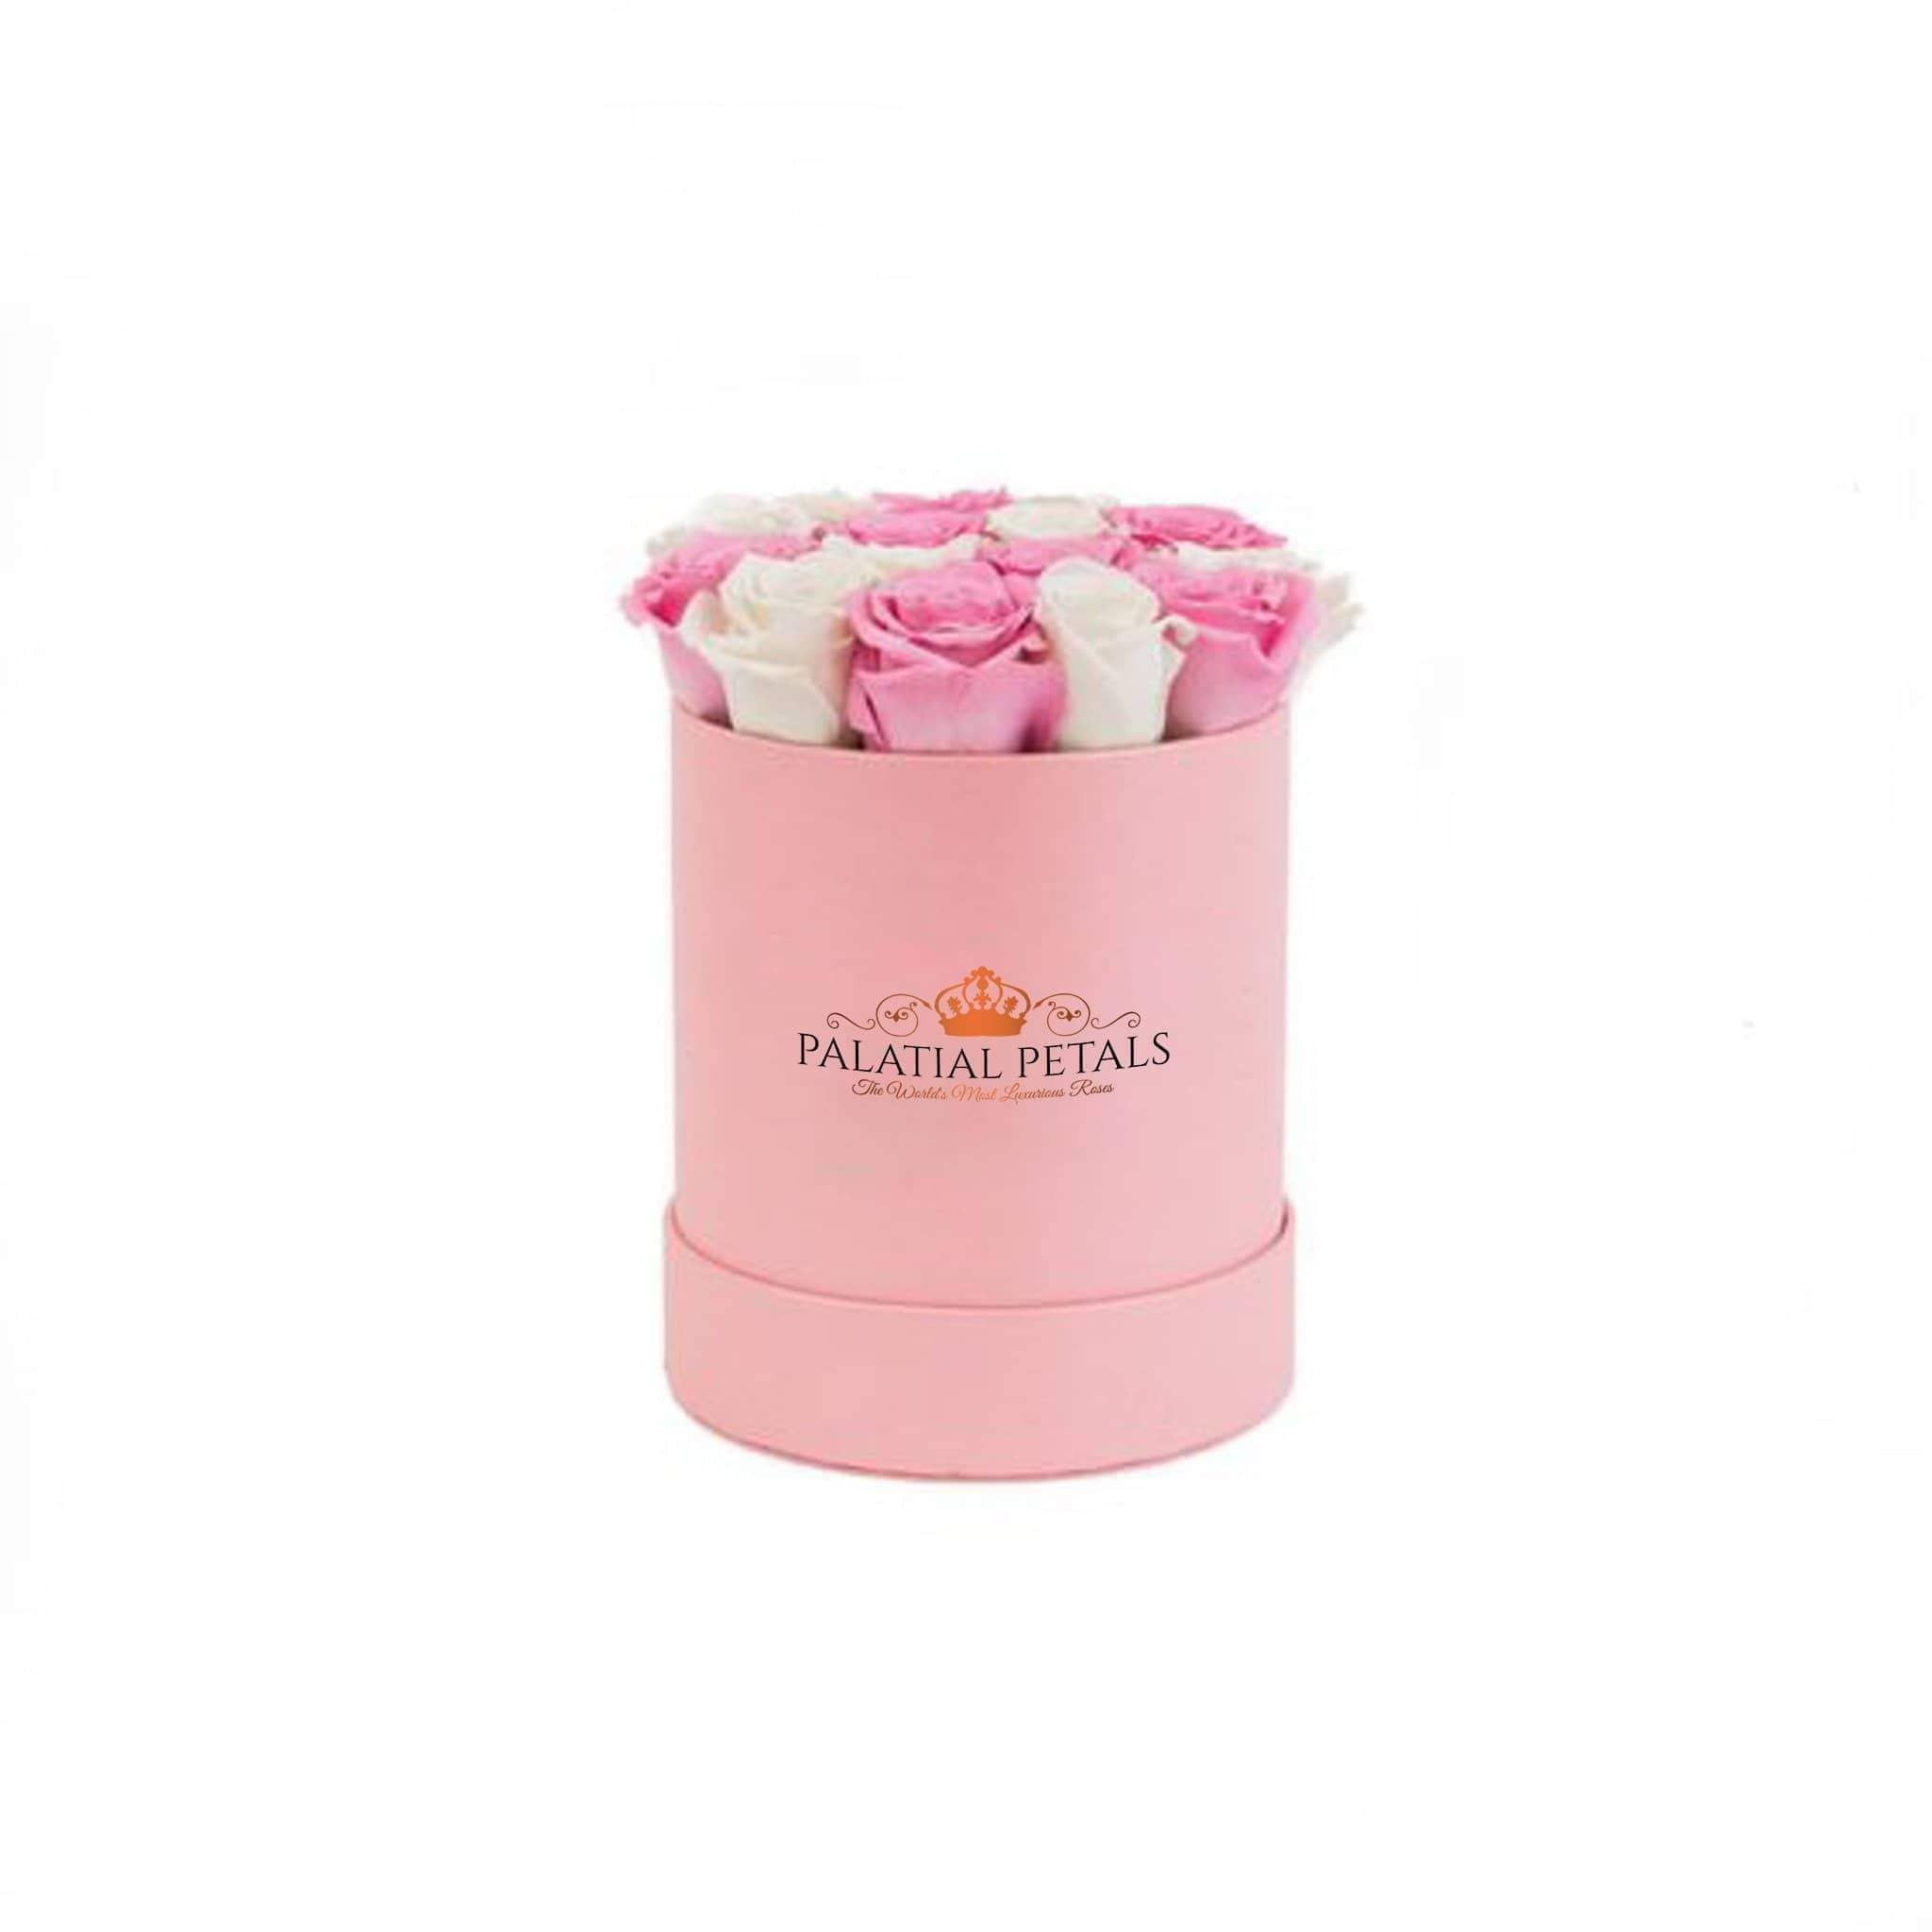 Pink & White Roses That Last A Year - Petite Rose Box - Palatial Petals